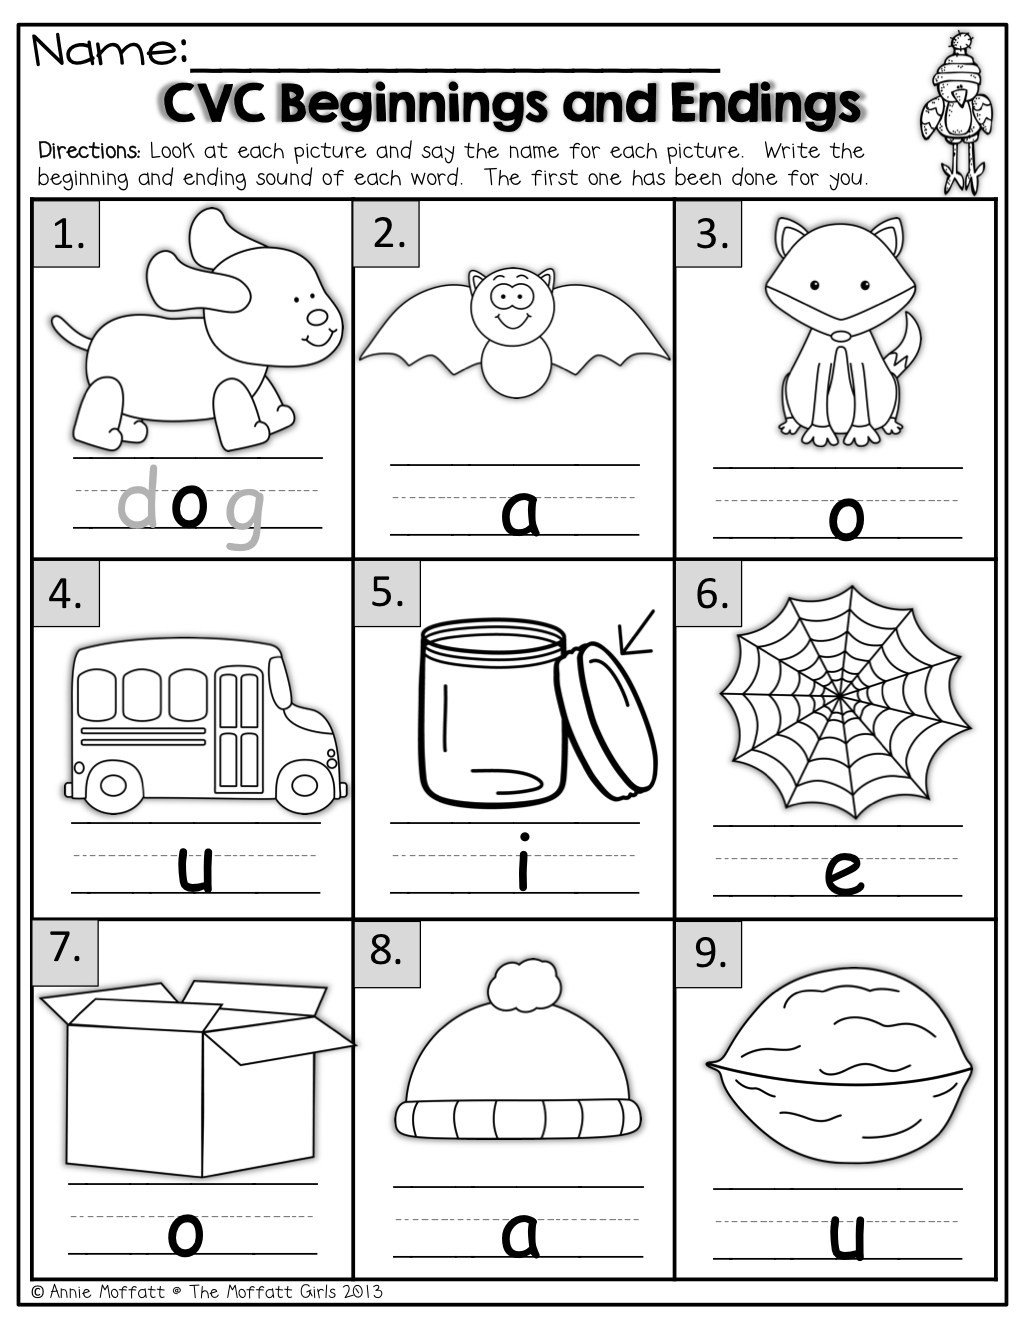 Beginning and Ending sound Worksheets Beginning sounds T Worksheet